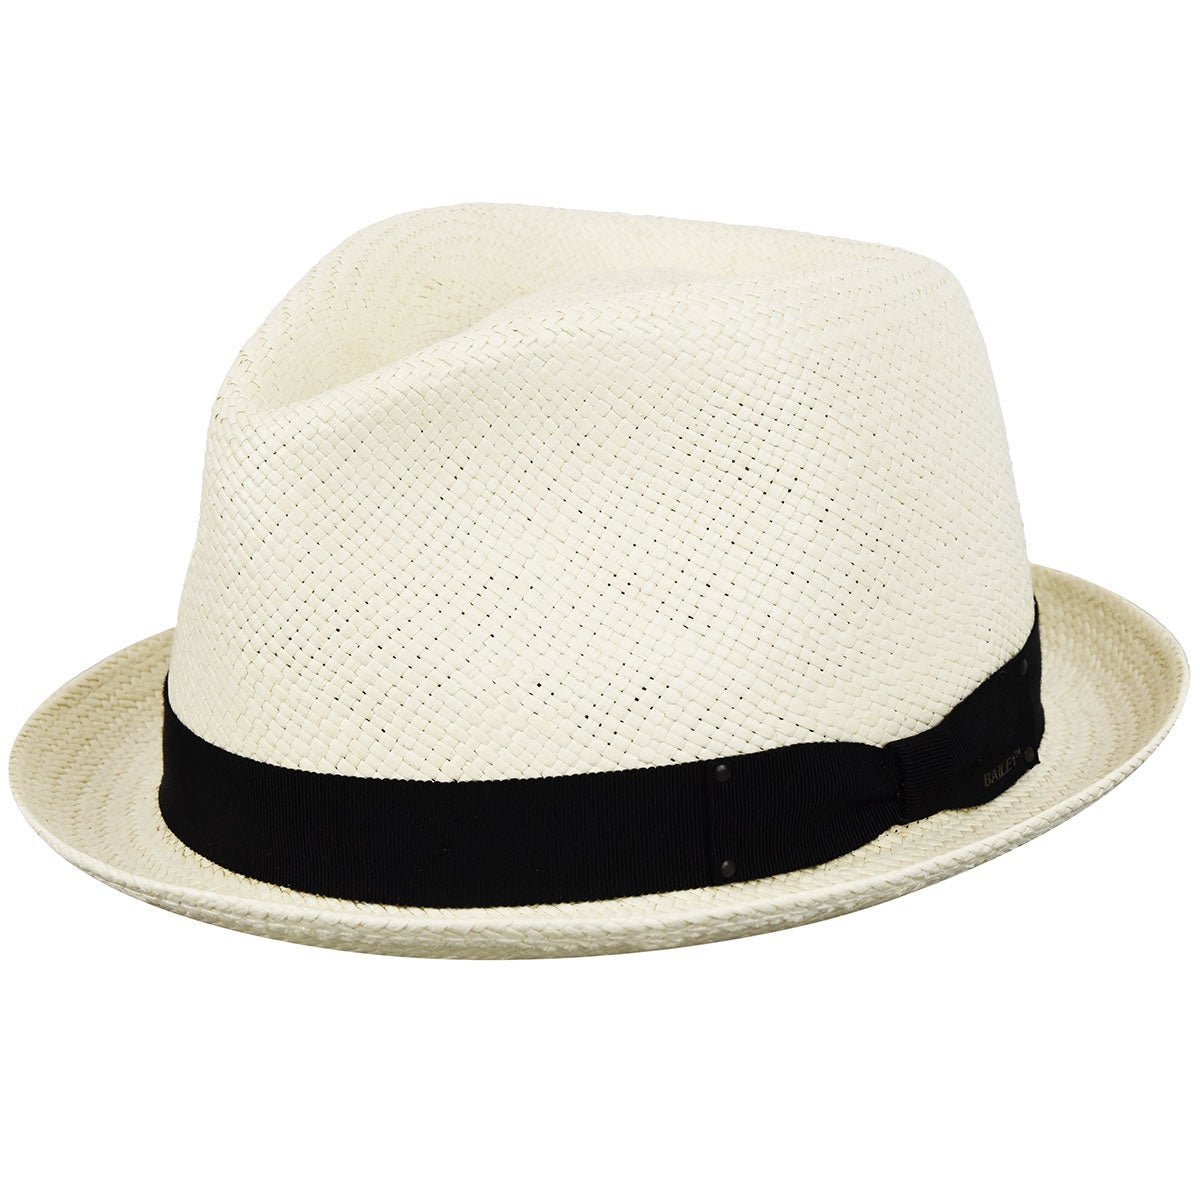 1960s – 70s Style Men's Hats Sydney Straw Panama Trilby $116.25 AT vintagedancer.com